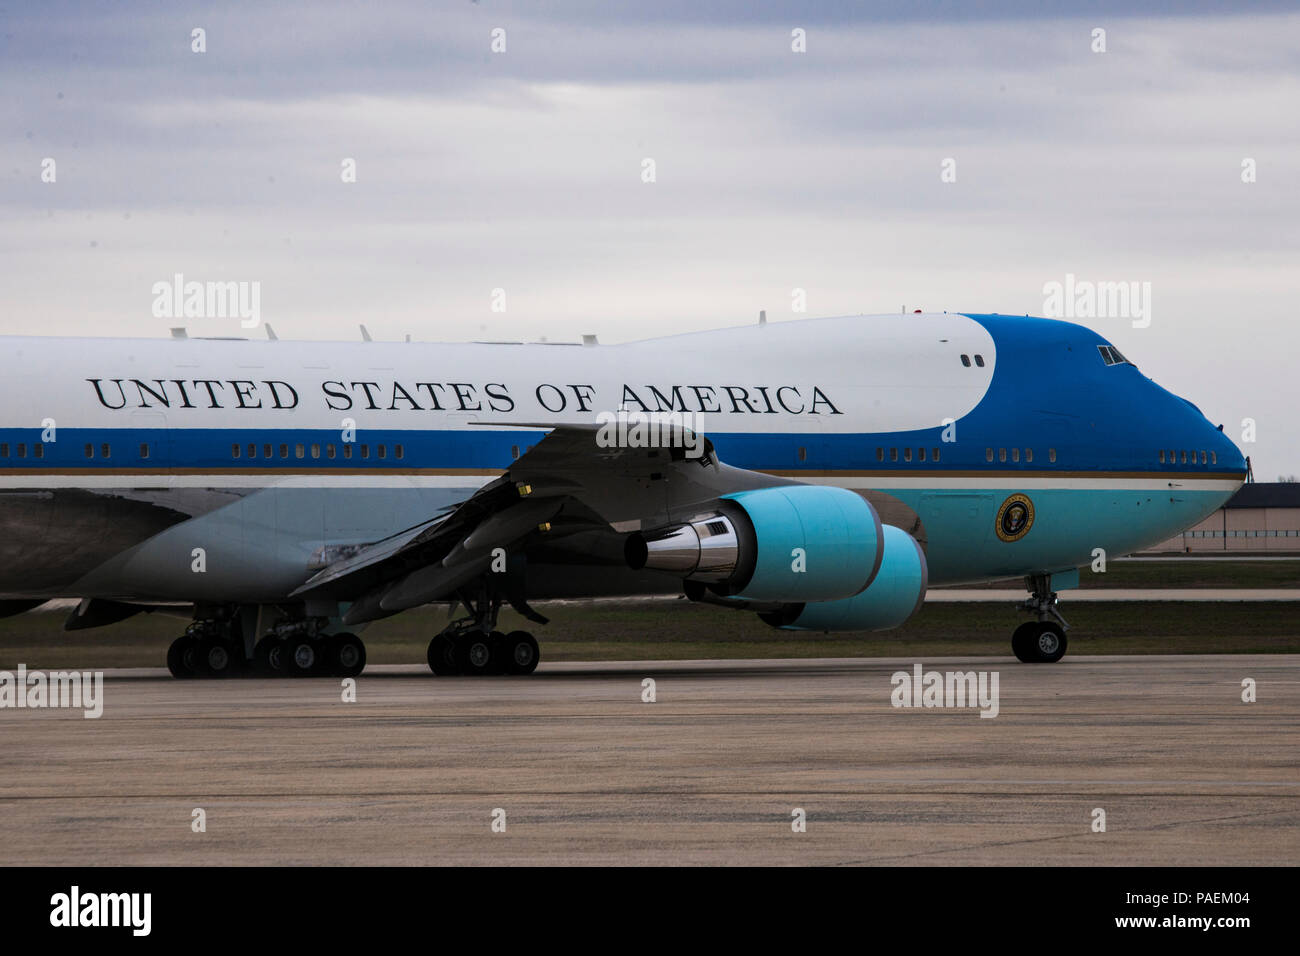 Stockfoto August 20, 2020, Joint Base Andrews, Maryland